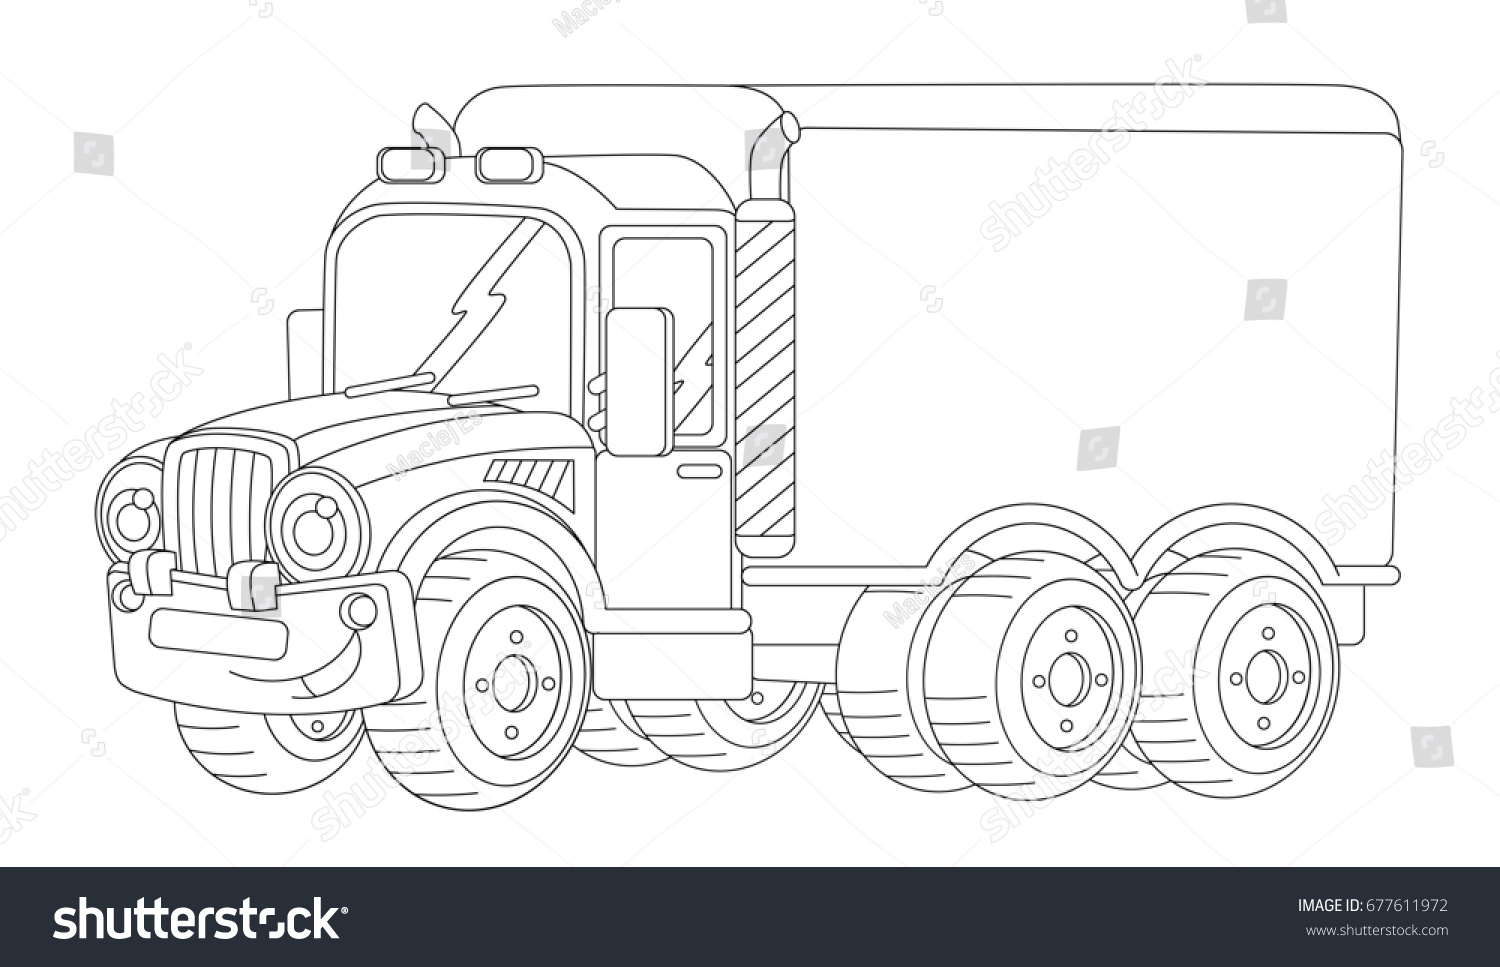 cartoon happy cargo truck with trailer coloring page illustration for children